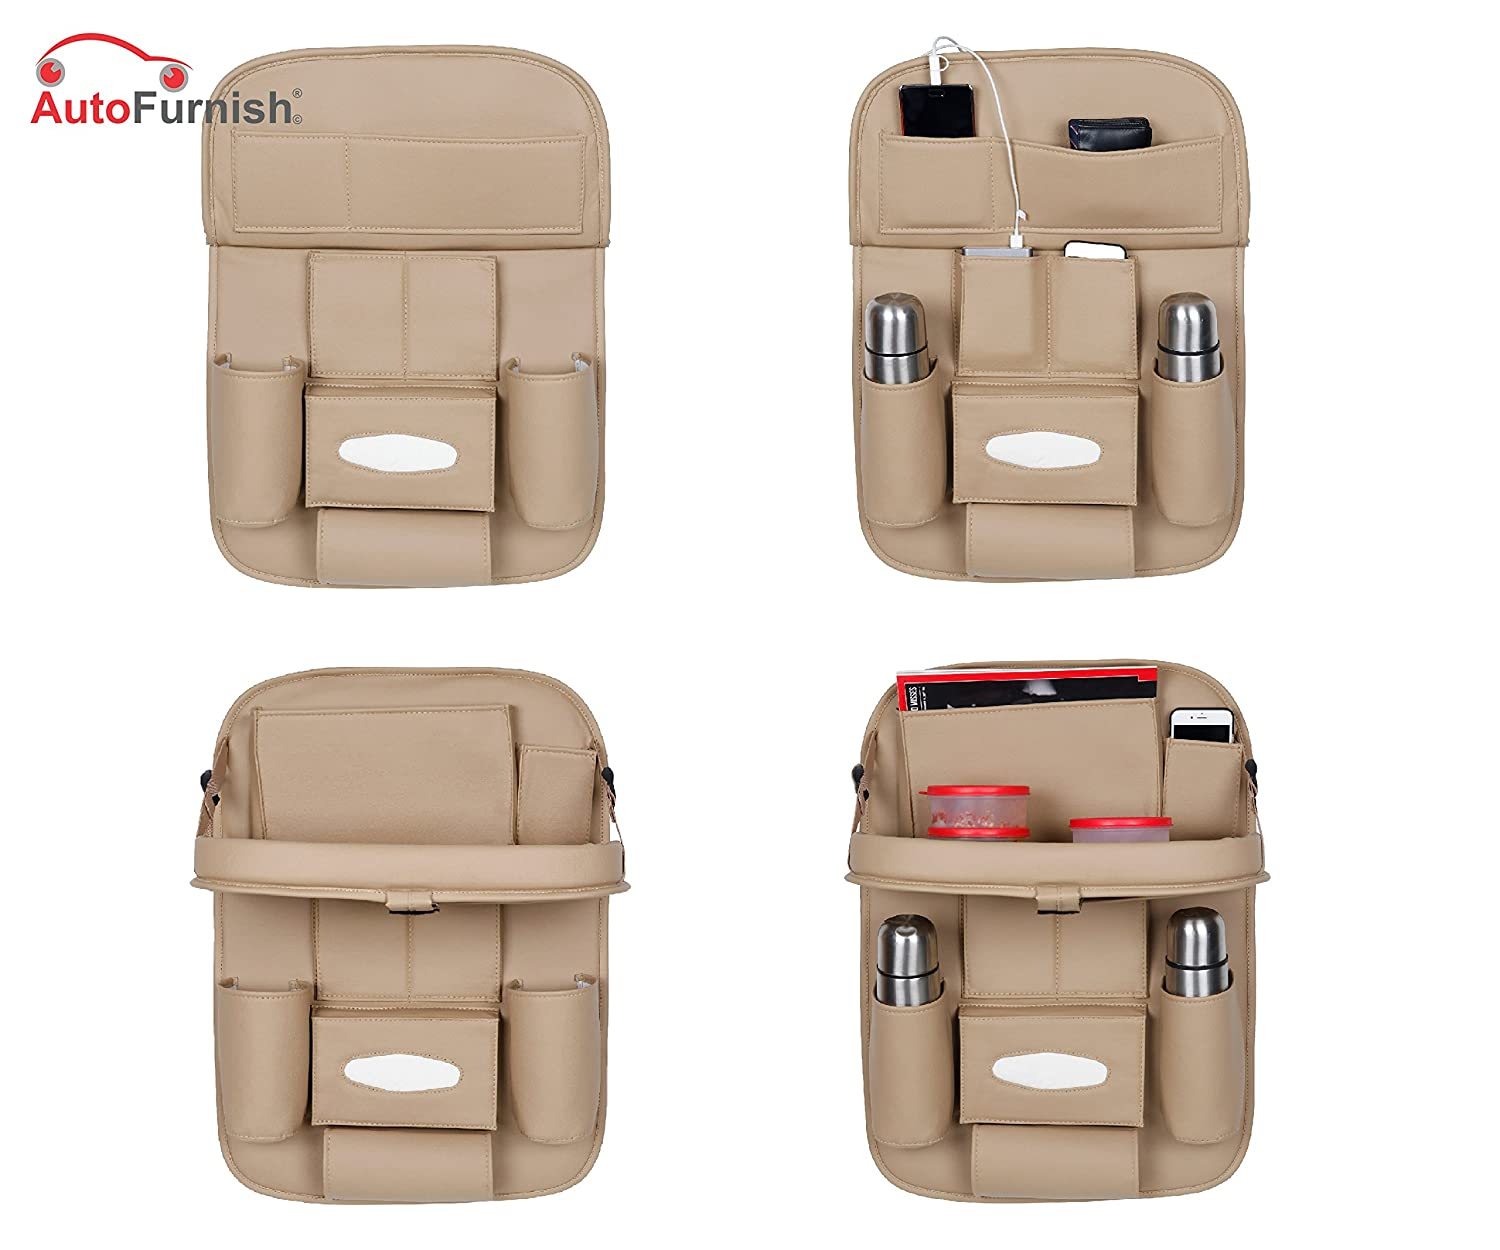 3D Car Back Seat Multi Pocket Organizer Bag with Car Meal Tray